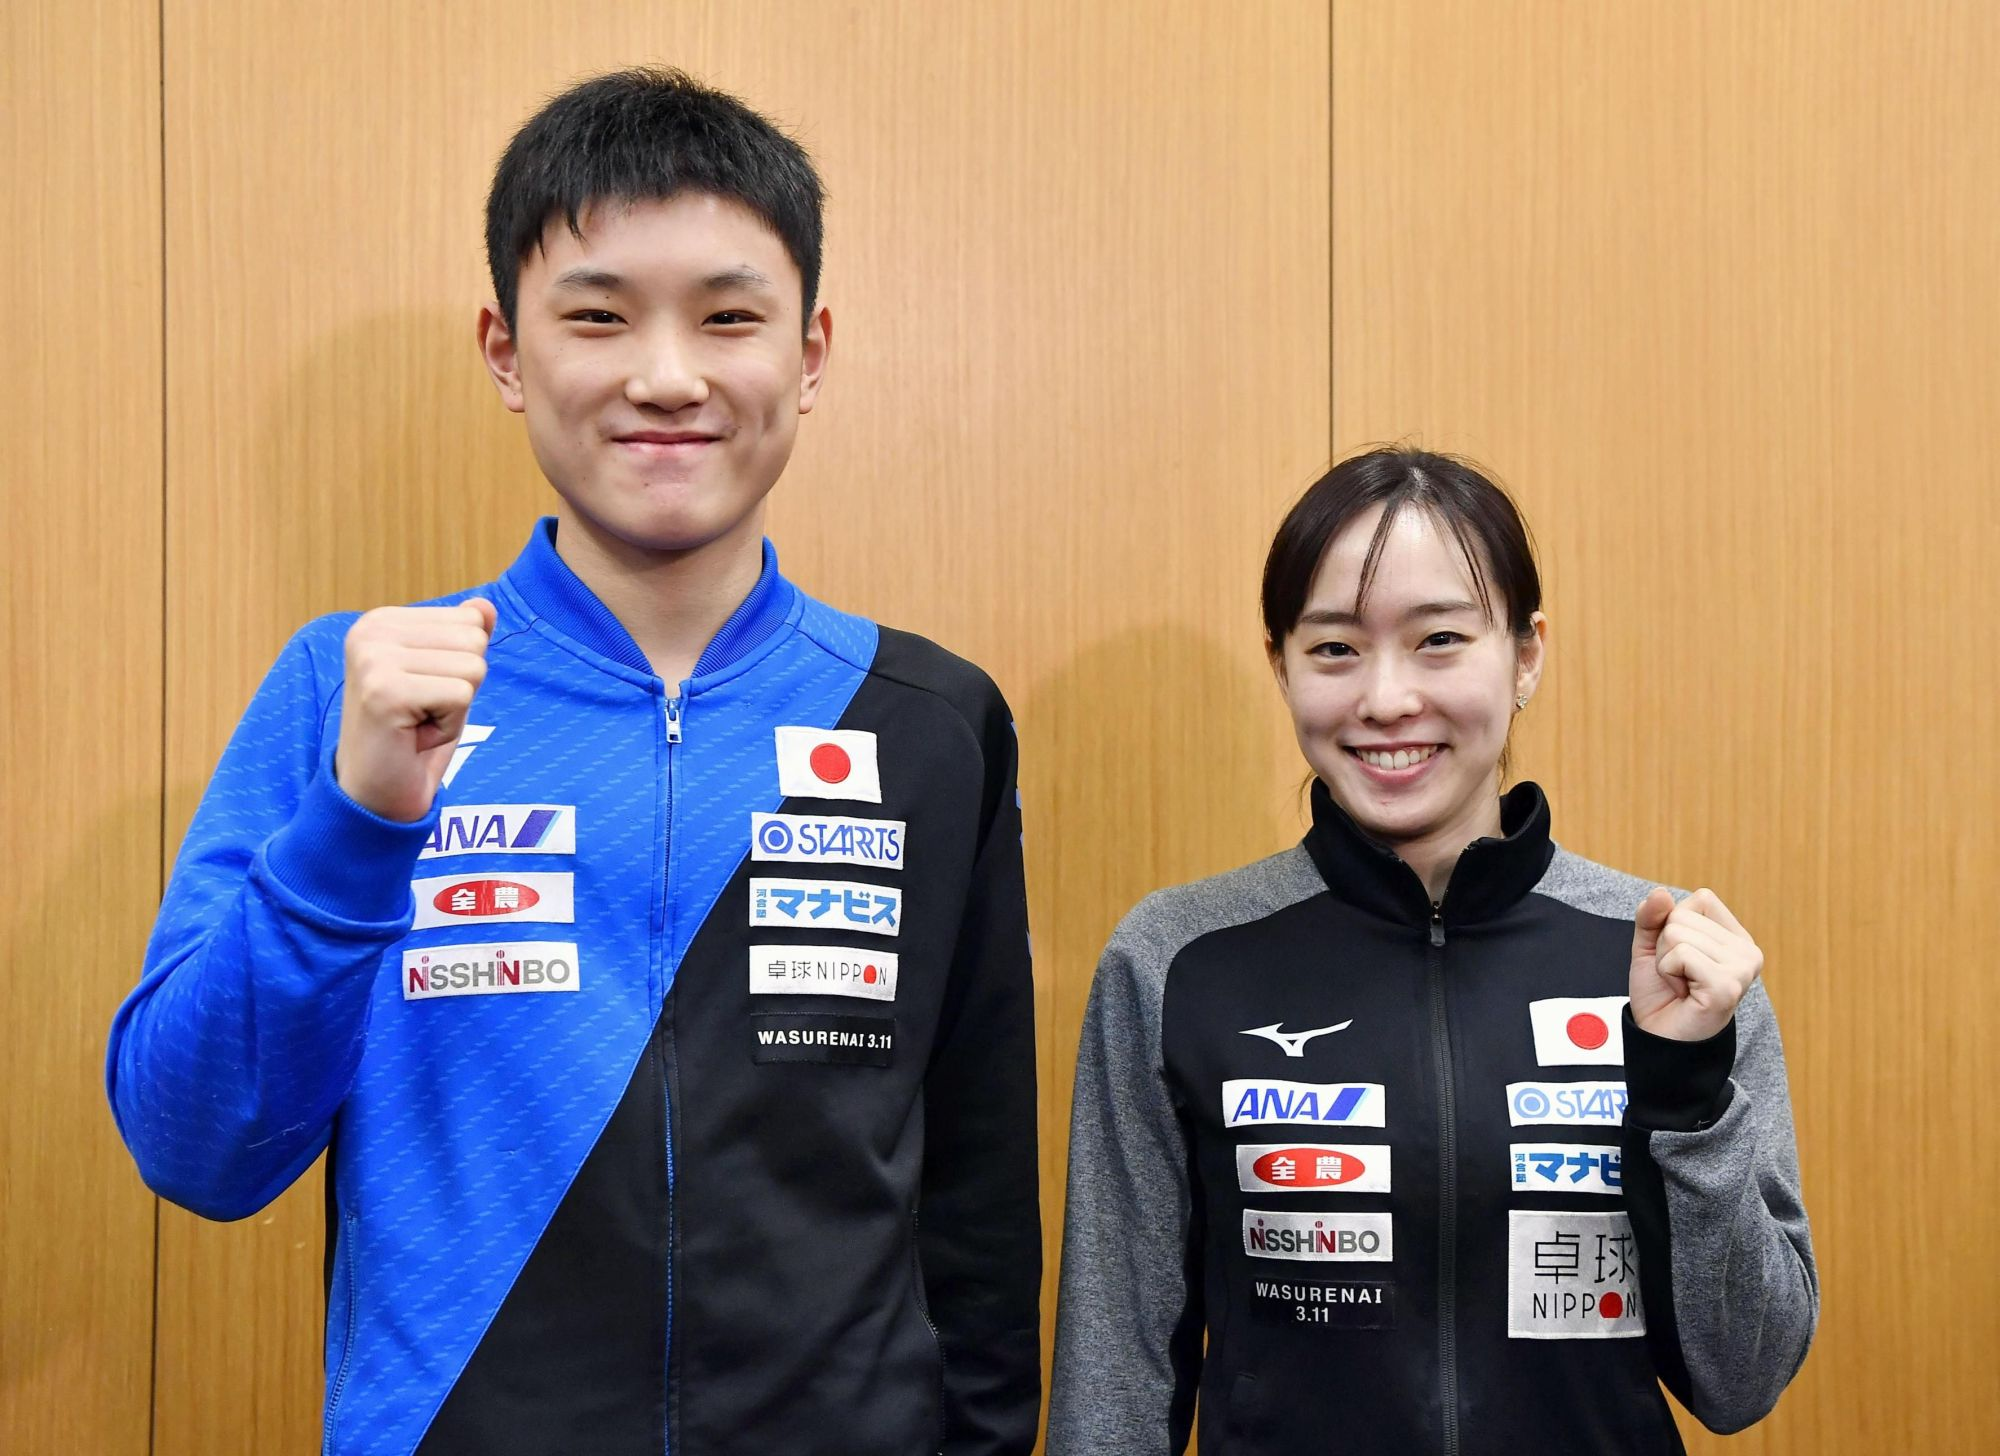 Tomokazu Harimoto (left) and Kasumi Ishikawa pose at a news conference announcing their selection to represent Japan in table tennis at the Tokyo Olympics on Monday. | KYODO